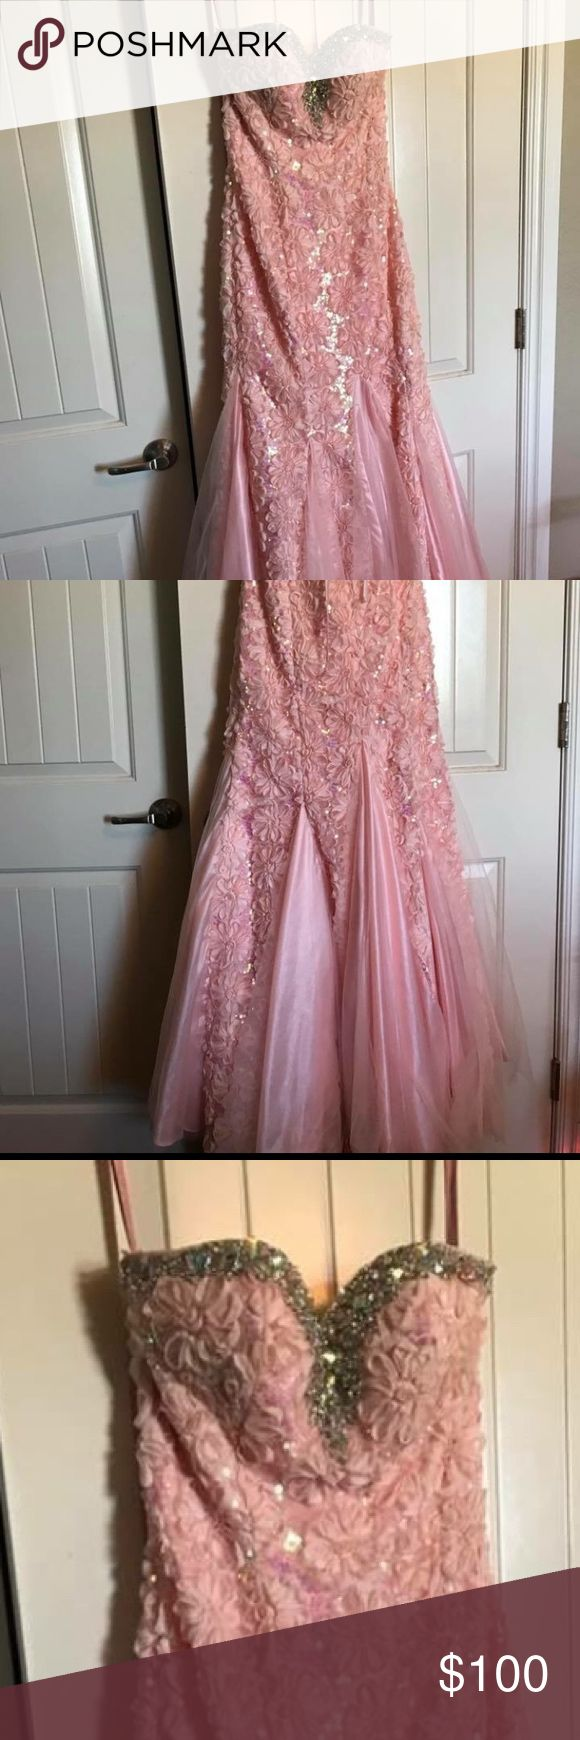 Blush Prom Dress Size 6, corset back, can fit down to a 4 Blush Dresses Prom